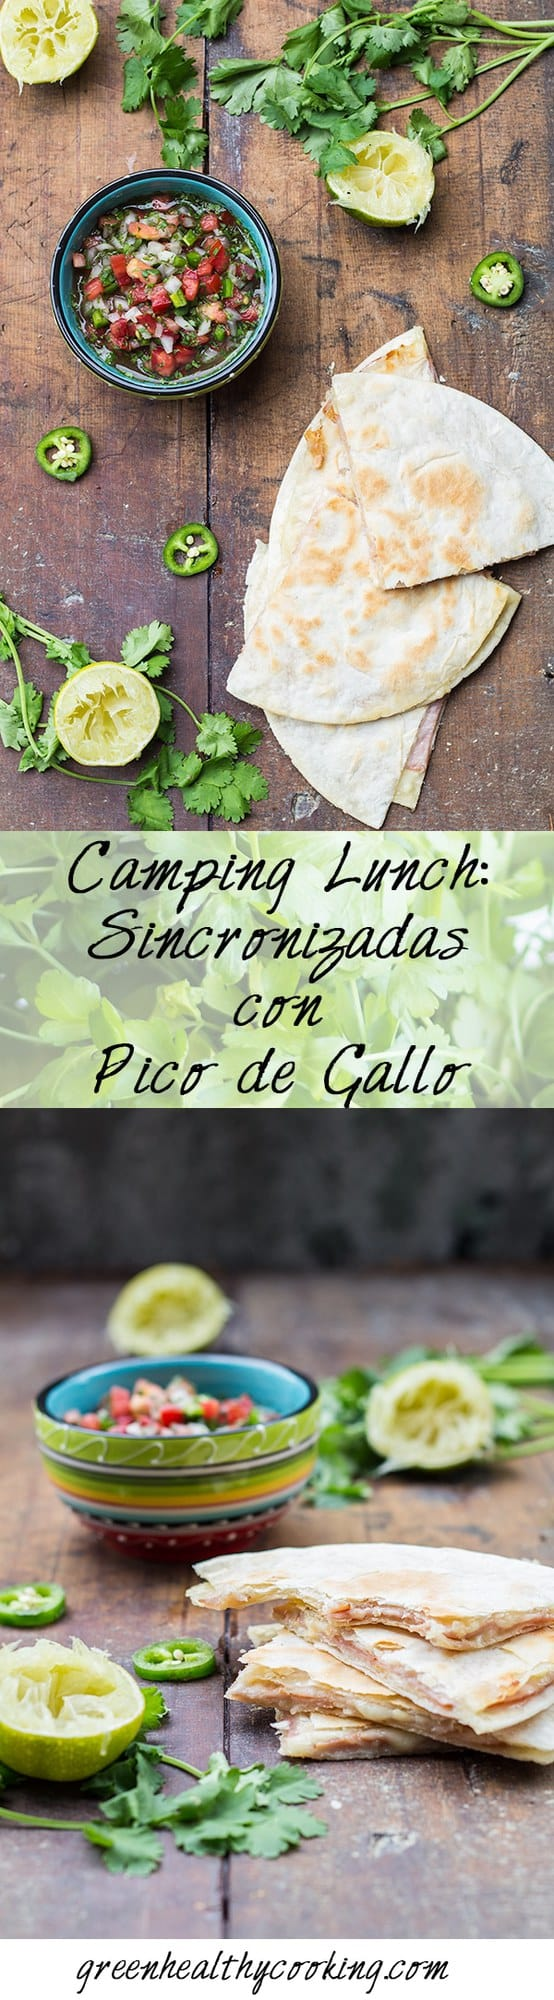 A delicious and nutritious full meal made in less than 20 minutes and that happens to be the best Camping Lunch: Sinconizadas con Pico de Gallo!